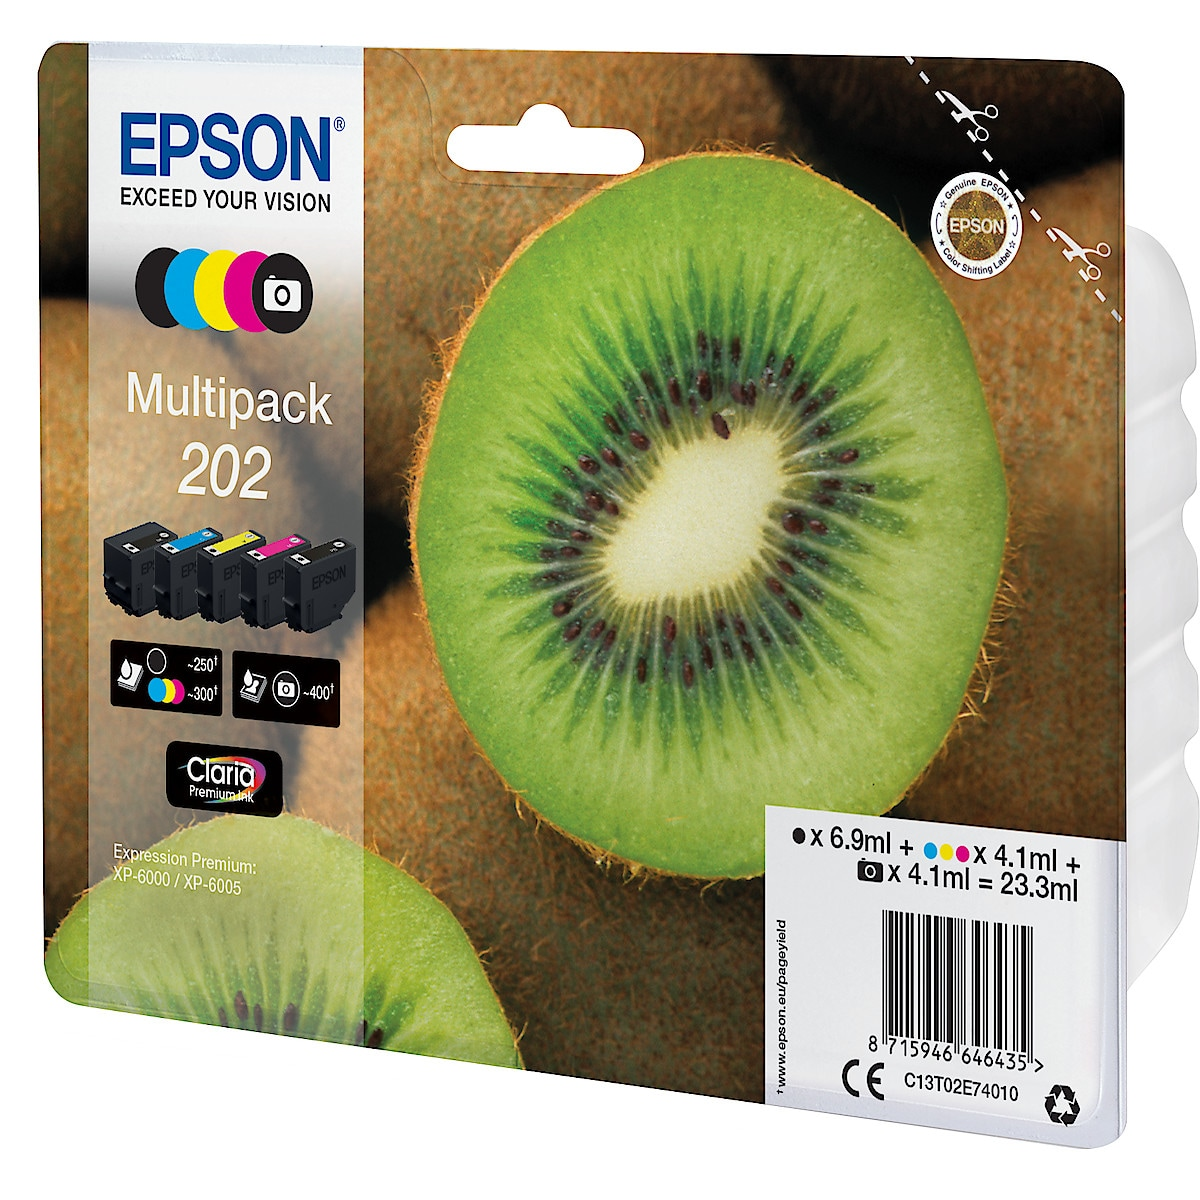 Epson 202 Ink Cartridge